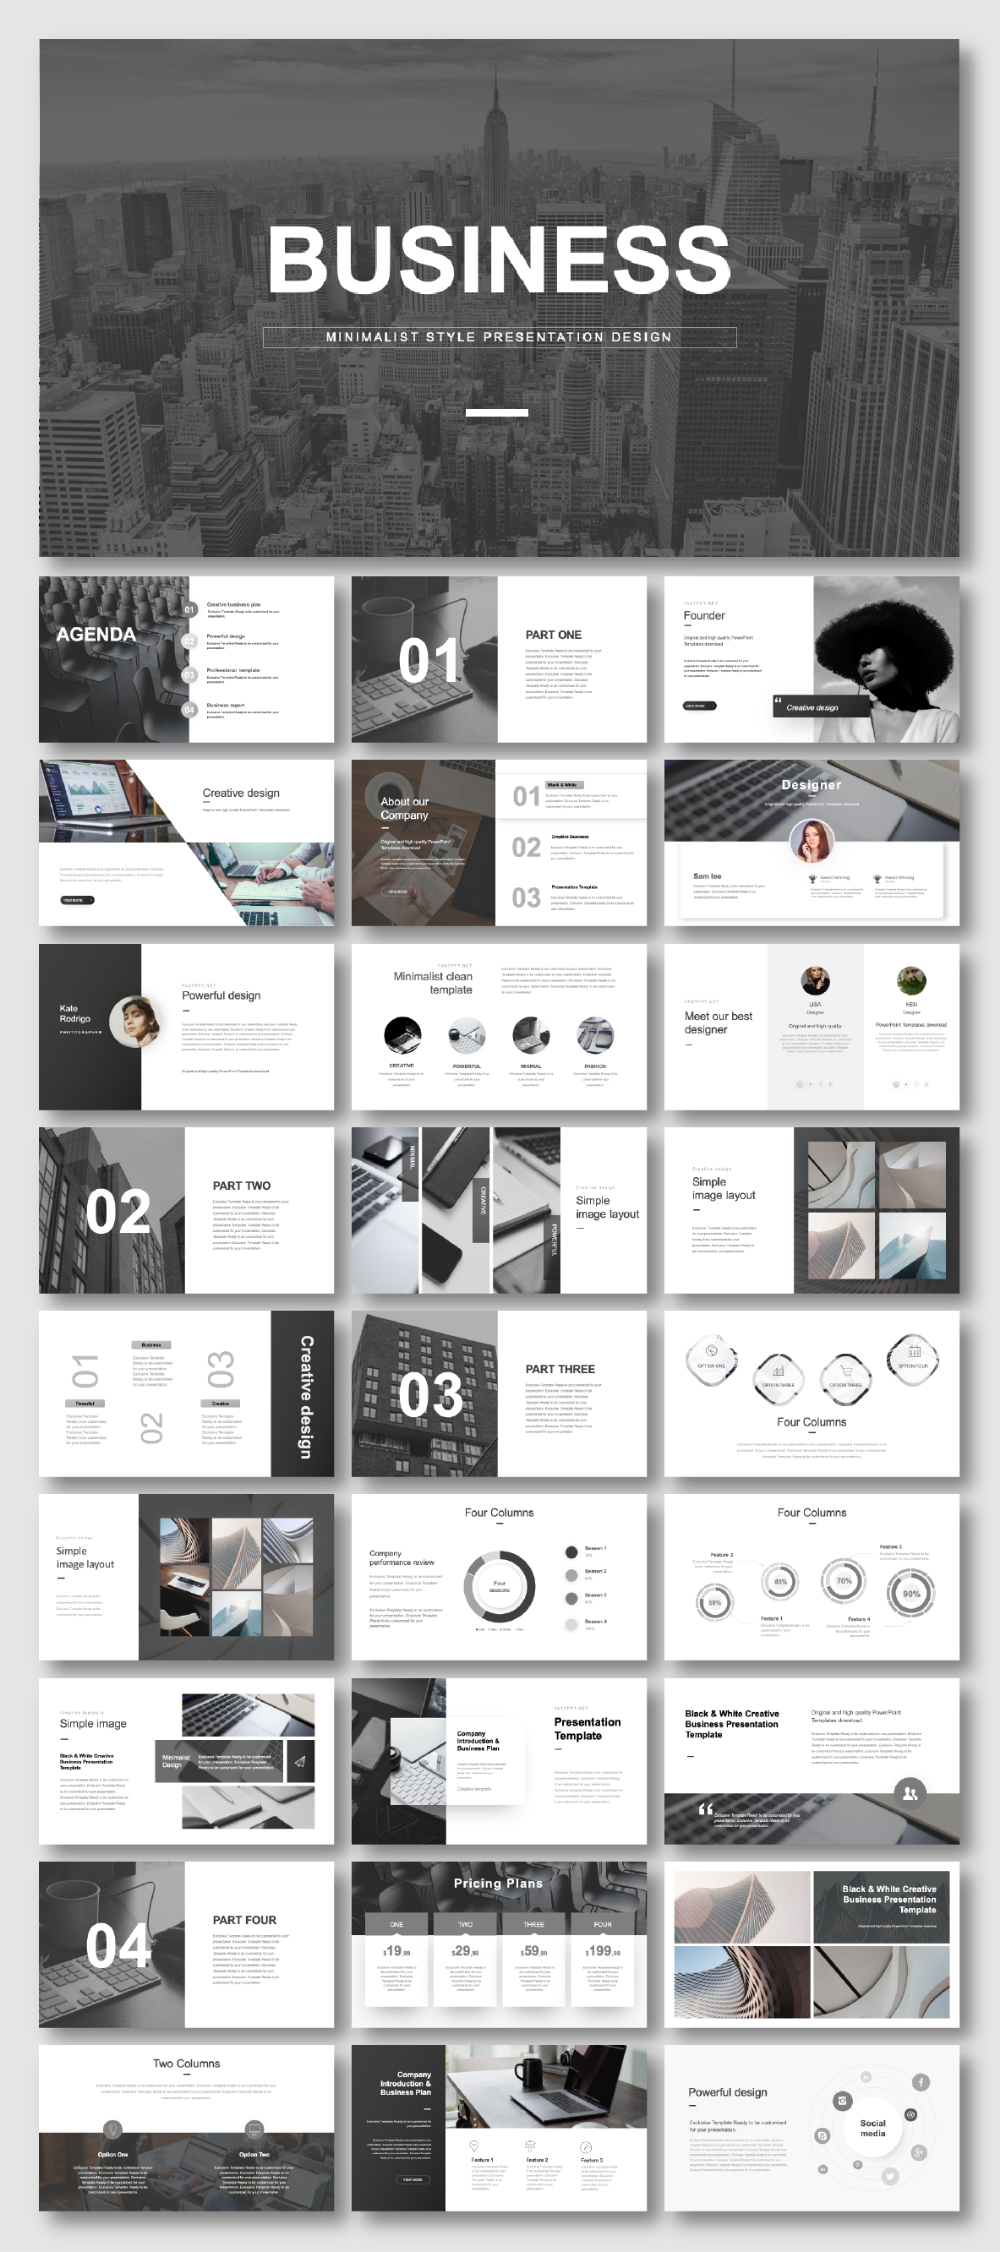 Black & White Useful Business Plan PowerPoint Template – Original and high quality PowerPoint Templates download